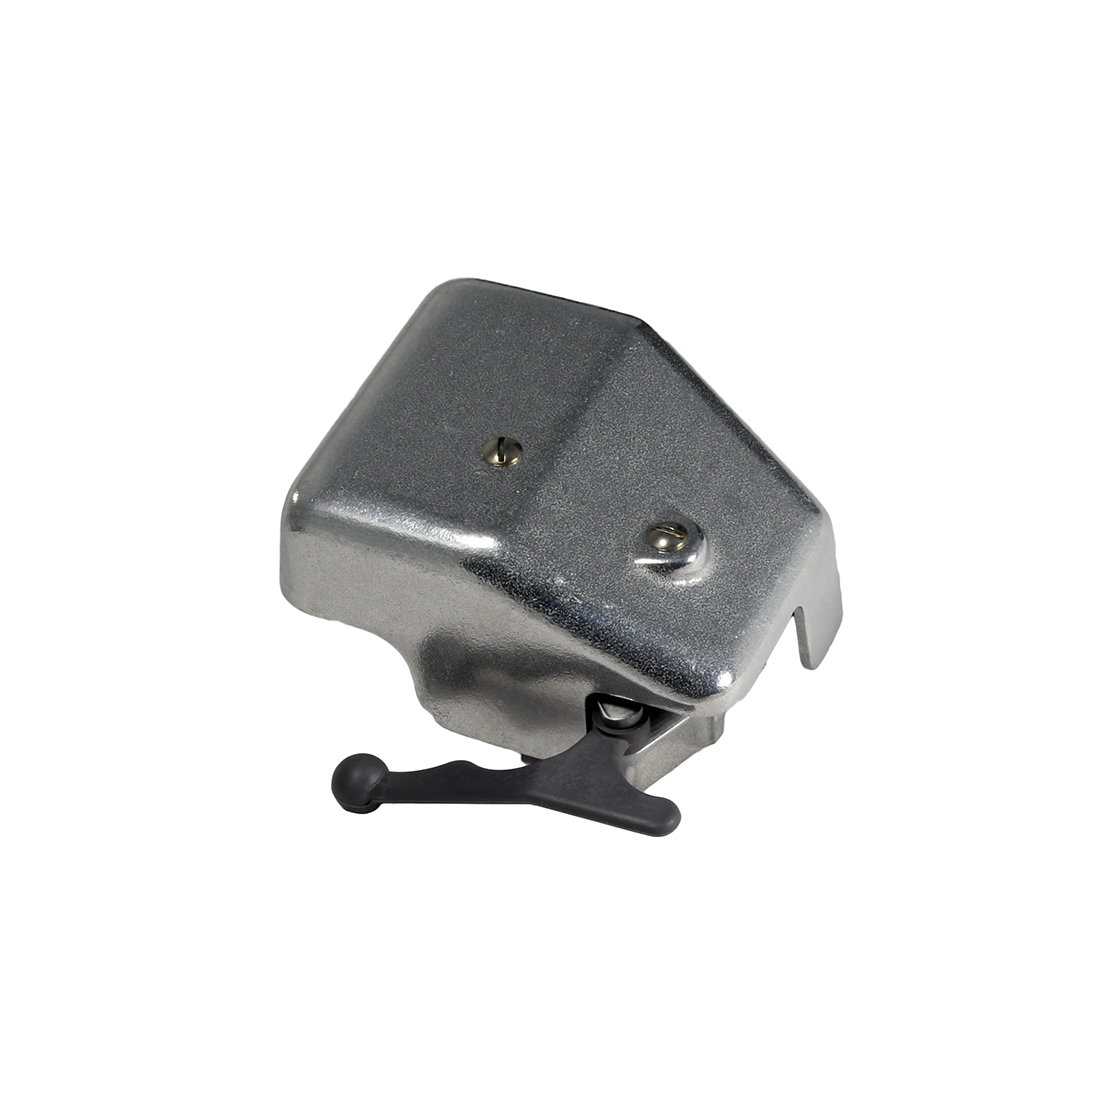 Where can you buy the sharpener assembly for a Hobart slicer?